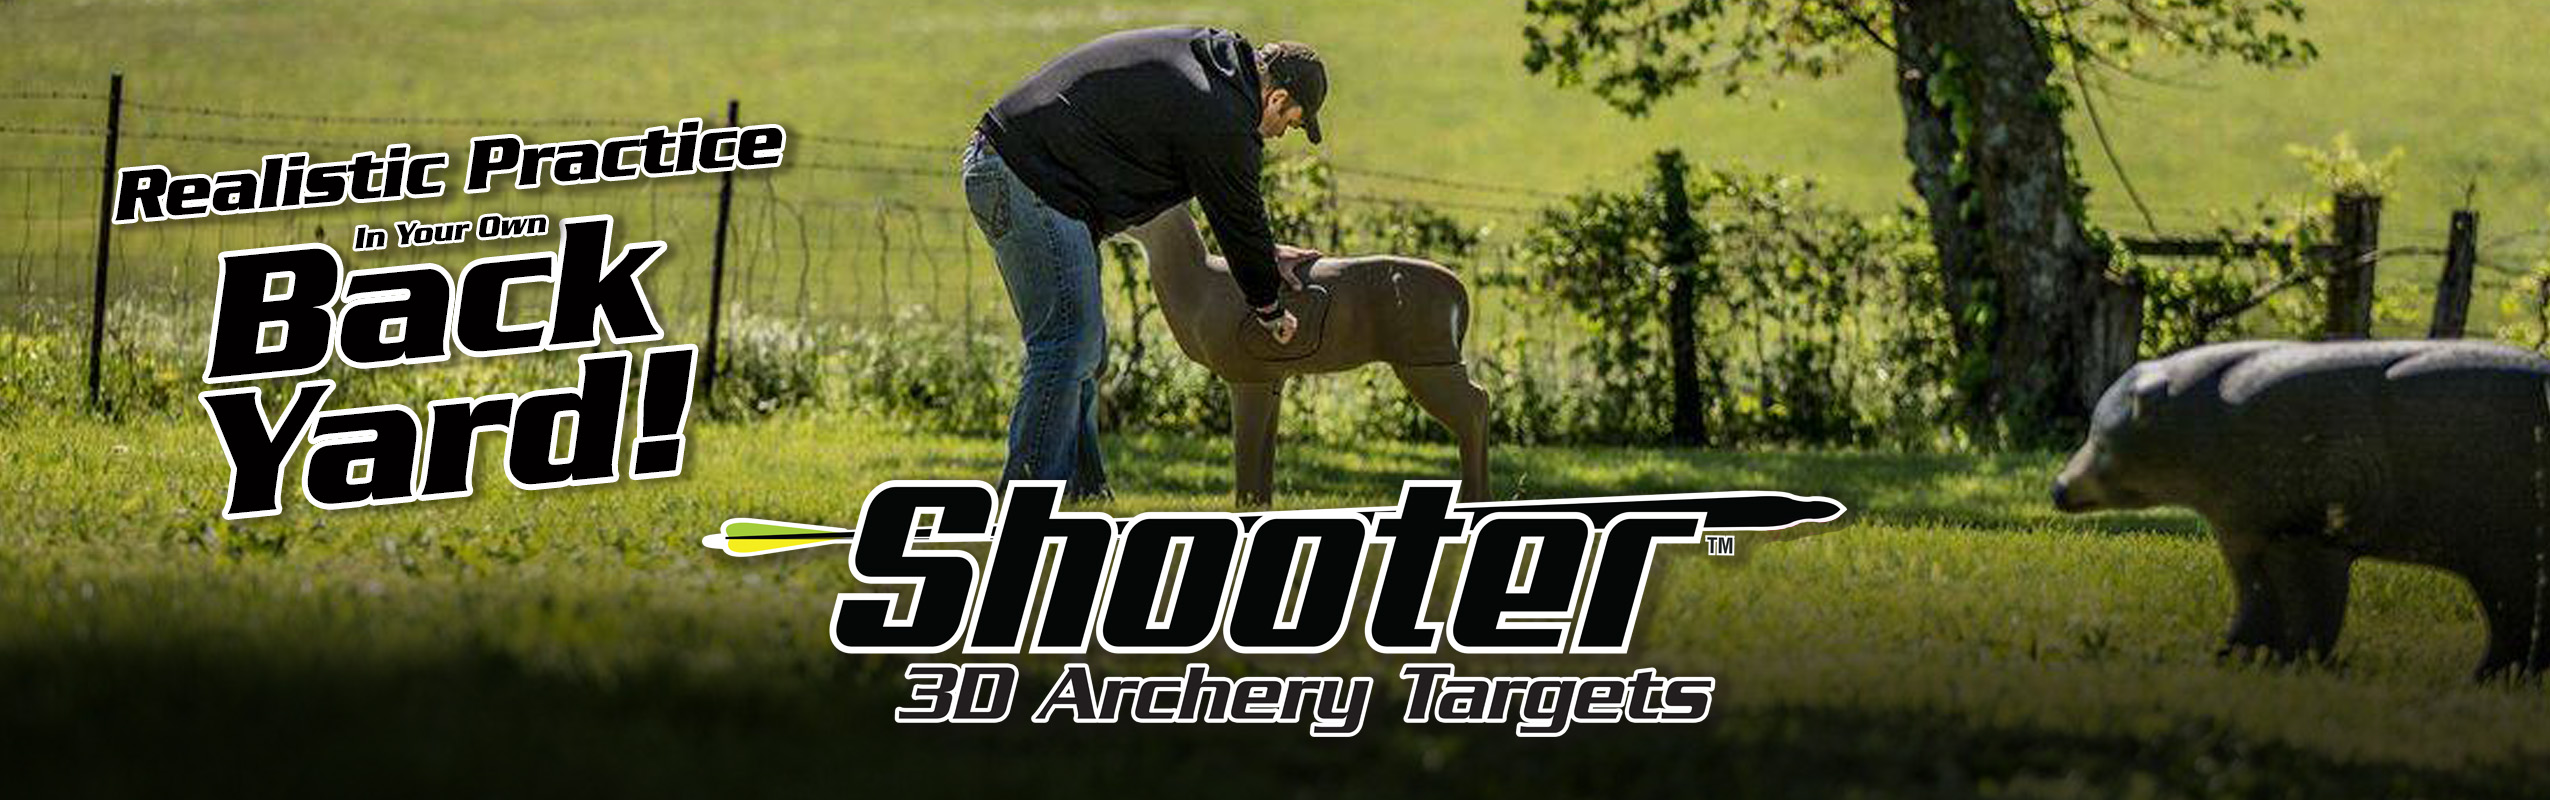 shooter-backyard-slider.jpg